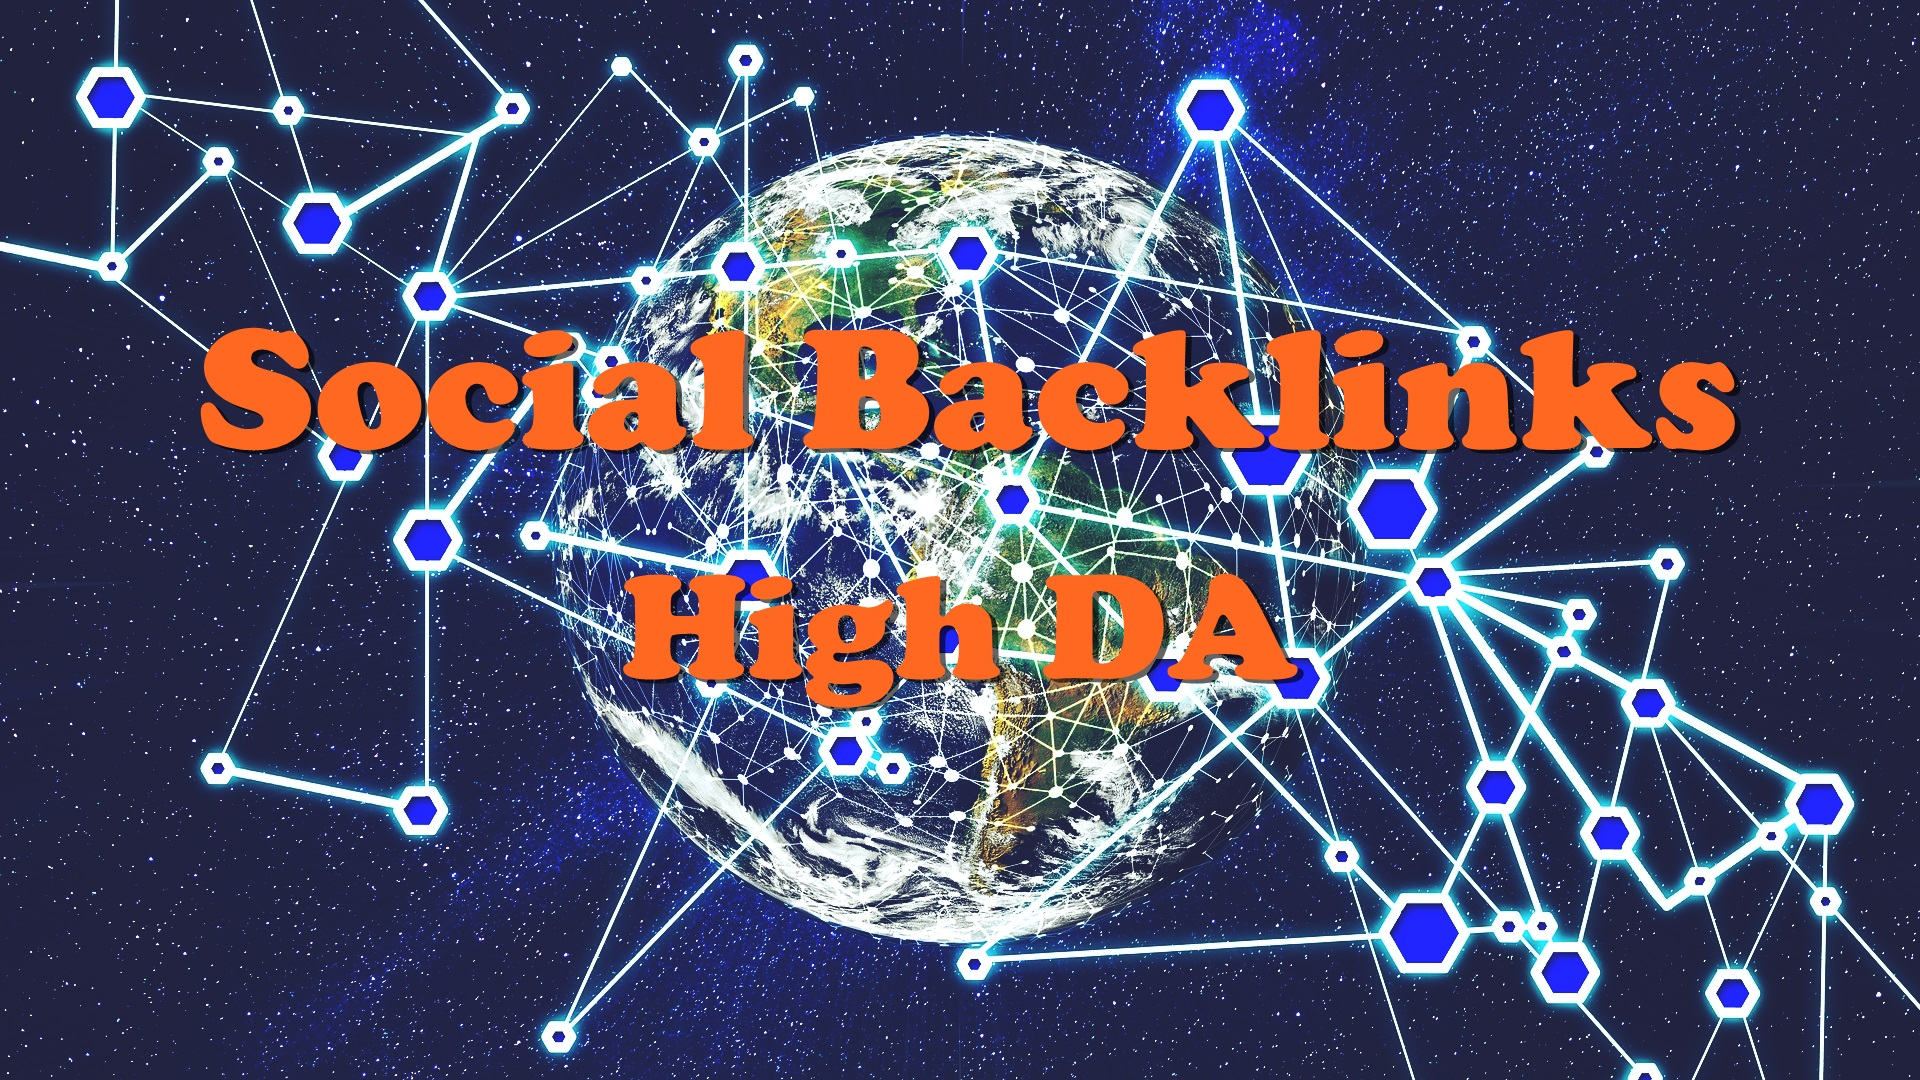 Manual 20 Social Backlinks High DA and Dofollow